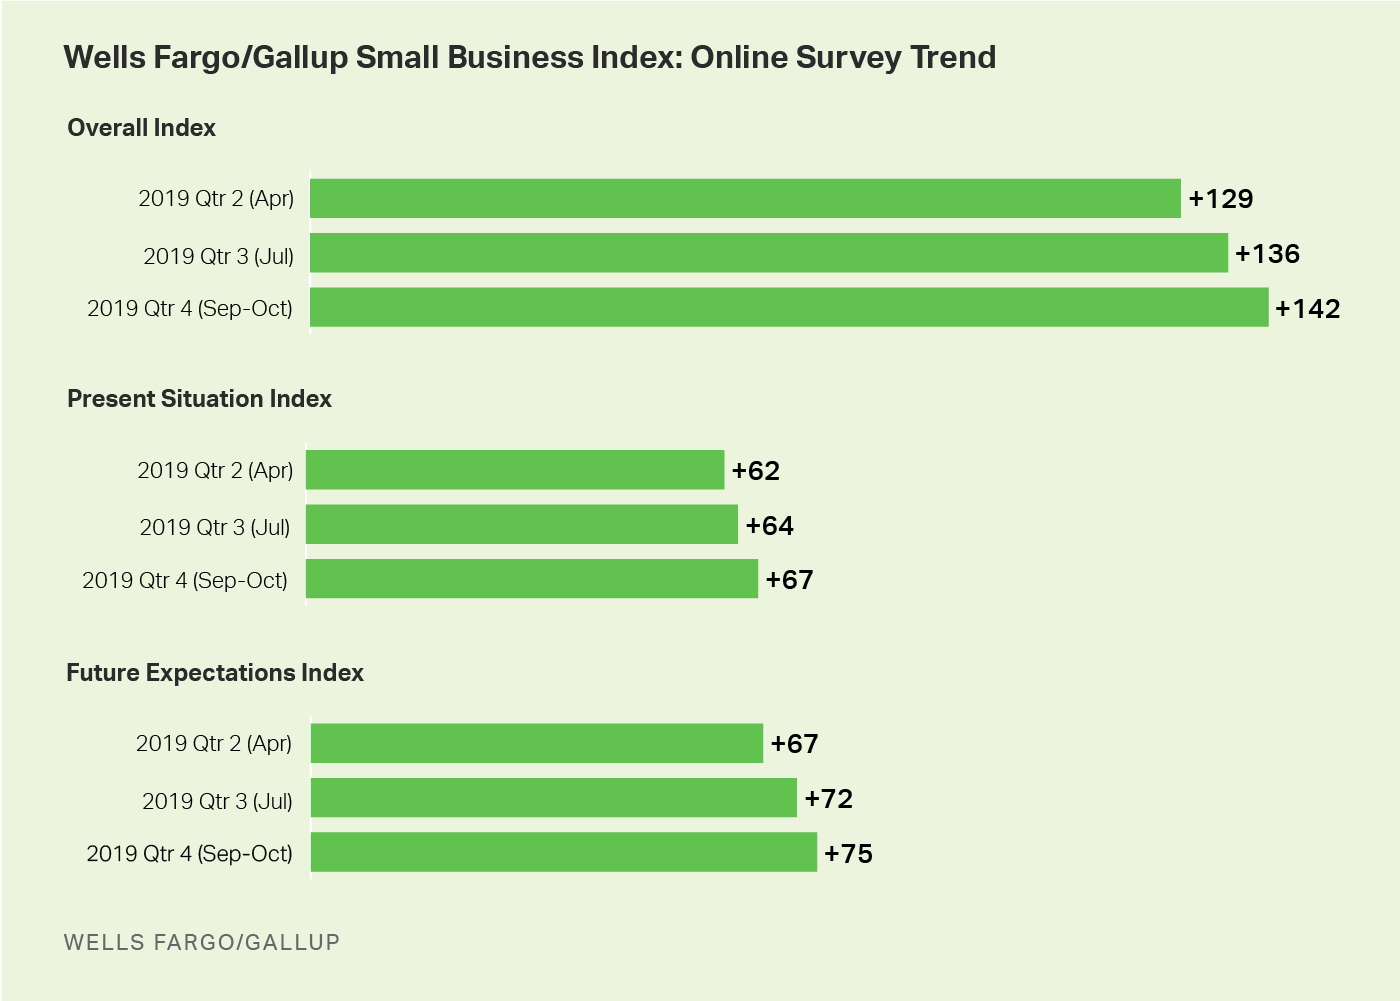 Bar graphs. American small business owners' views of their current and future situations.